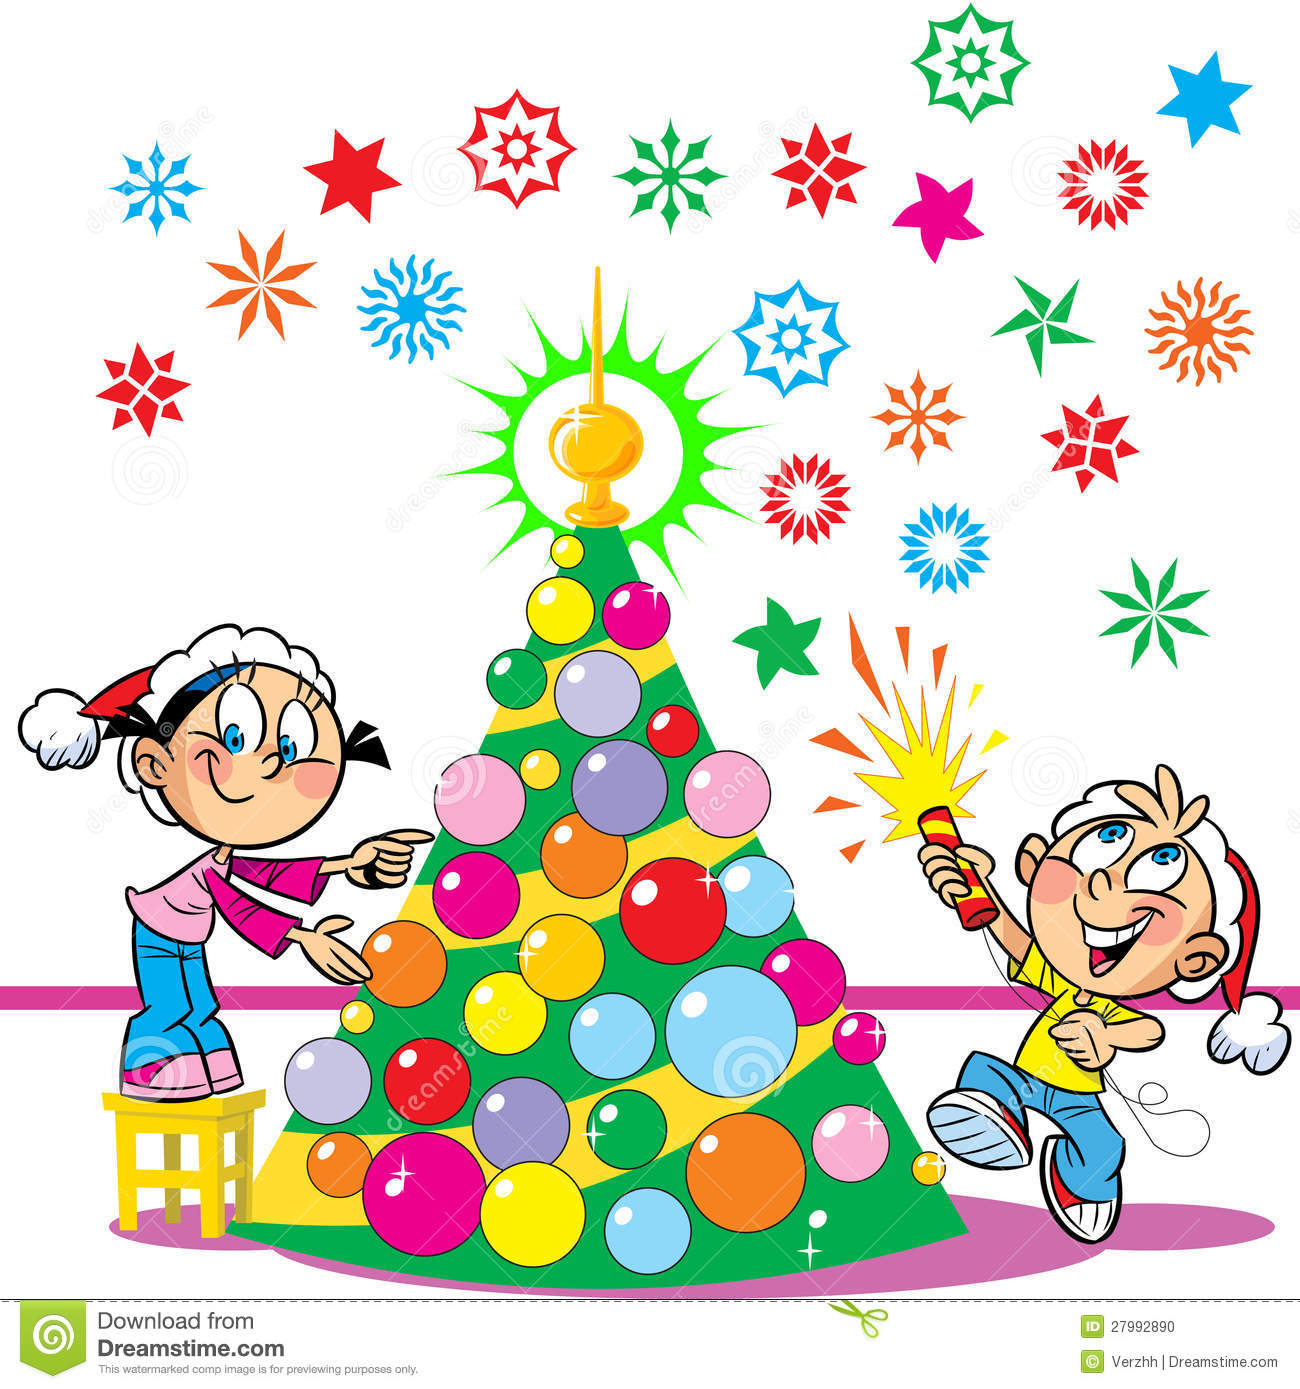 Children Decorate The Christmas Tree Stock Vector - Illustration of ...